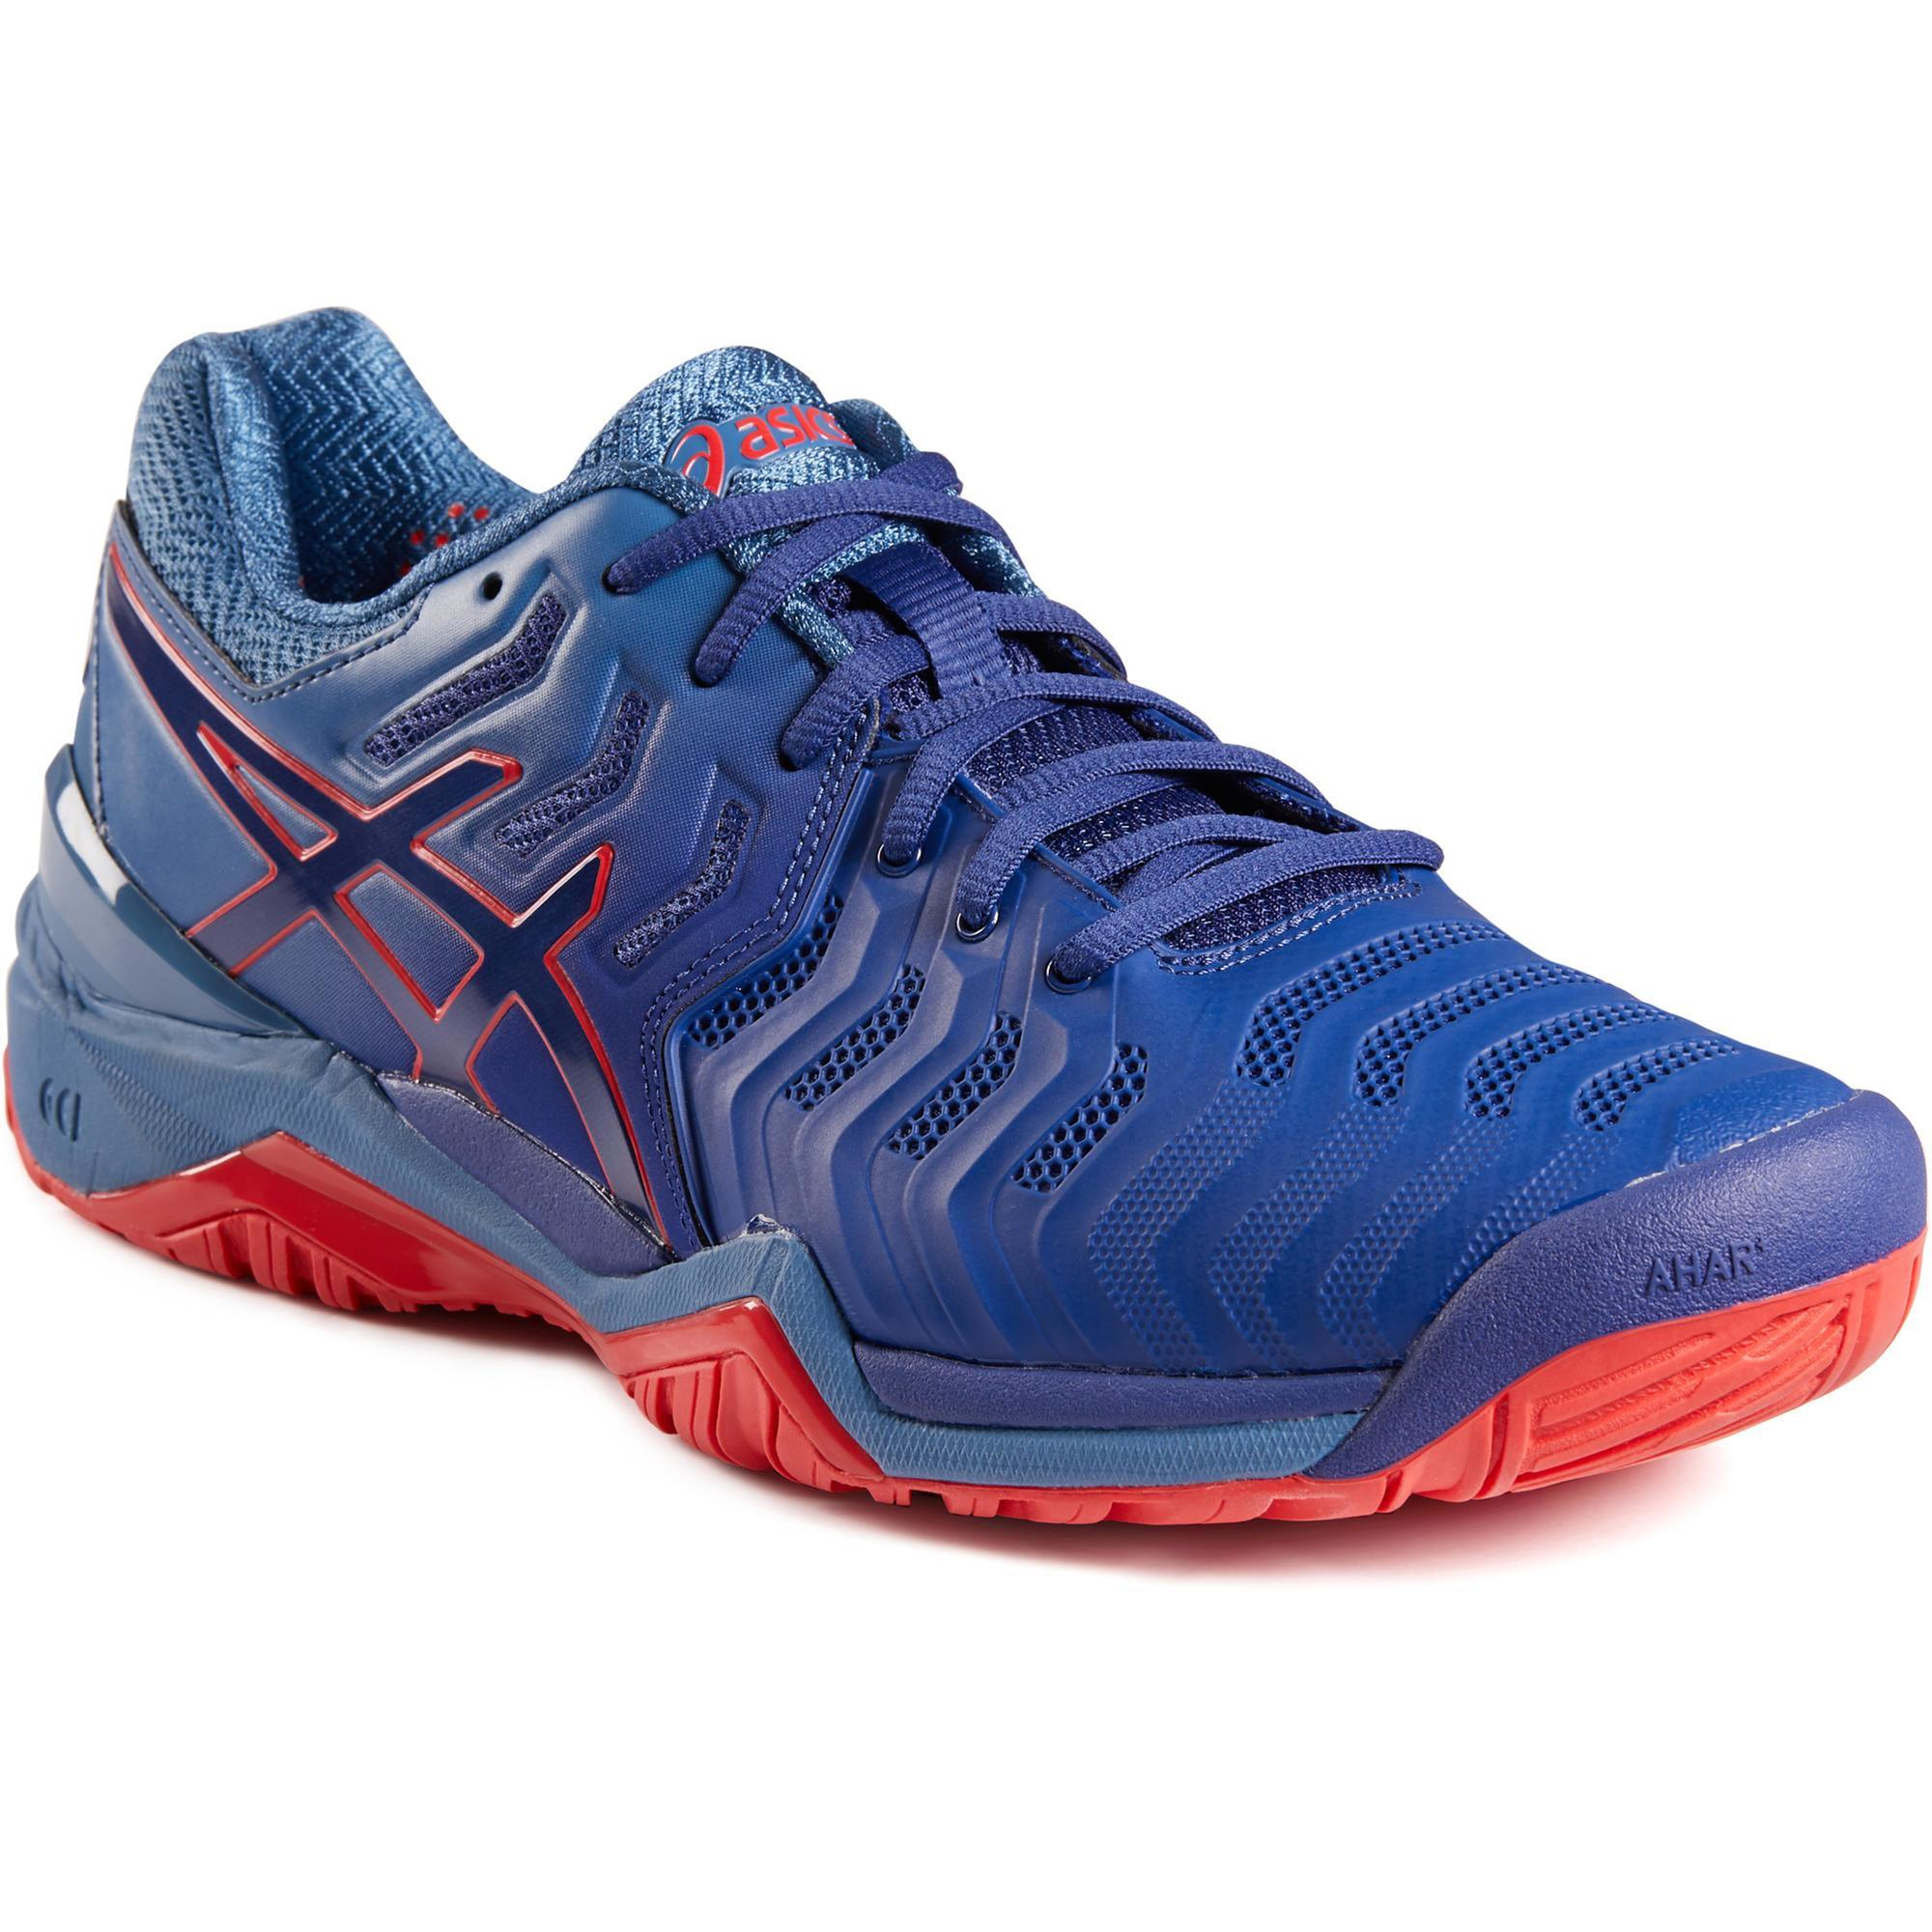 Asics Tennisschoenen heren Gel Resolution 7 grijs multicourt